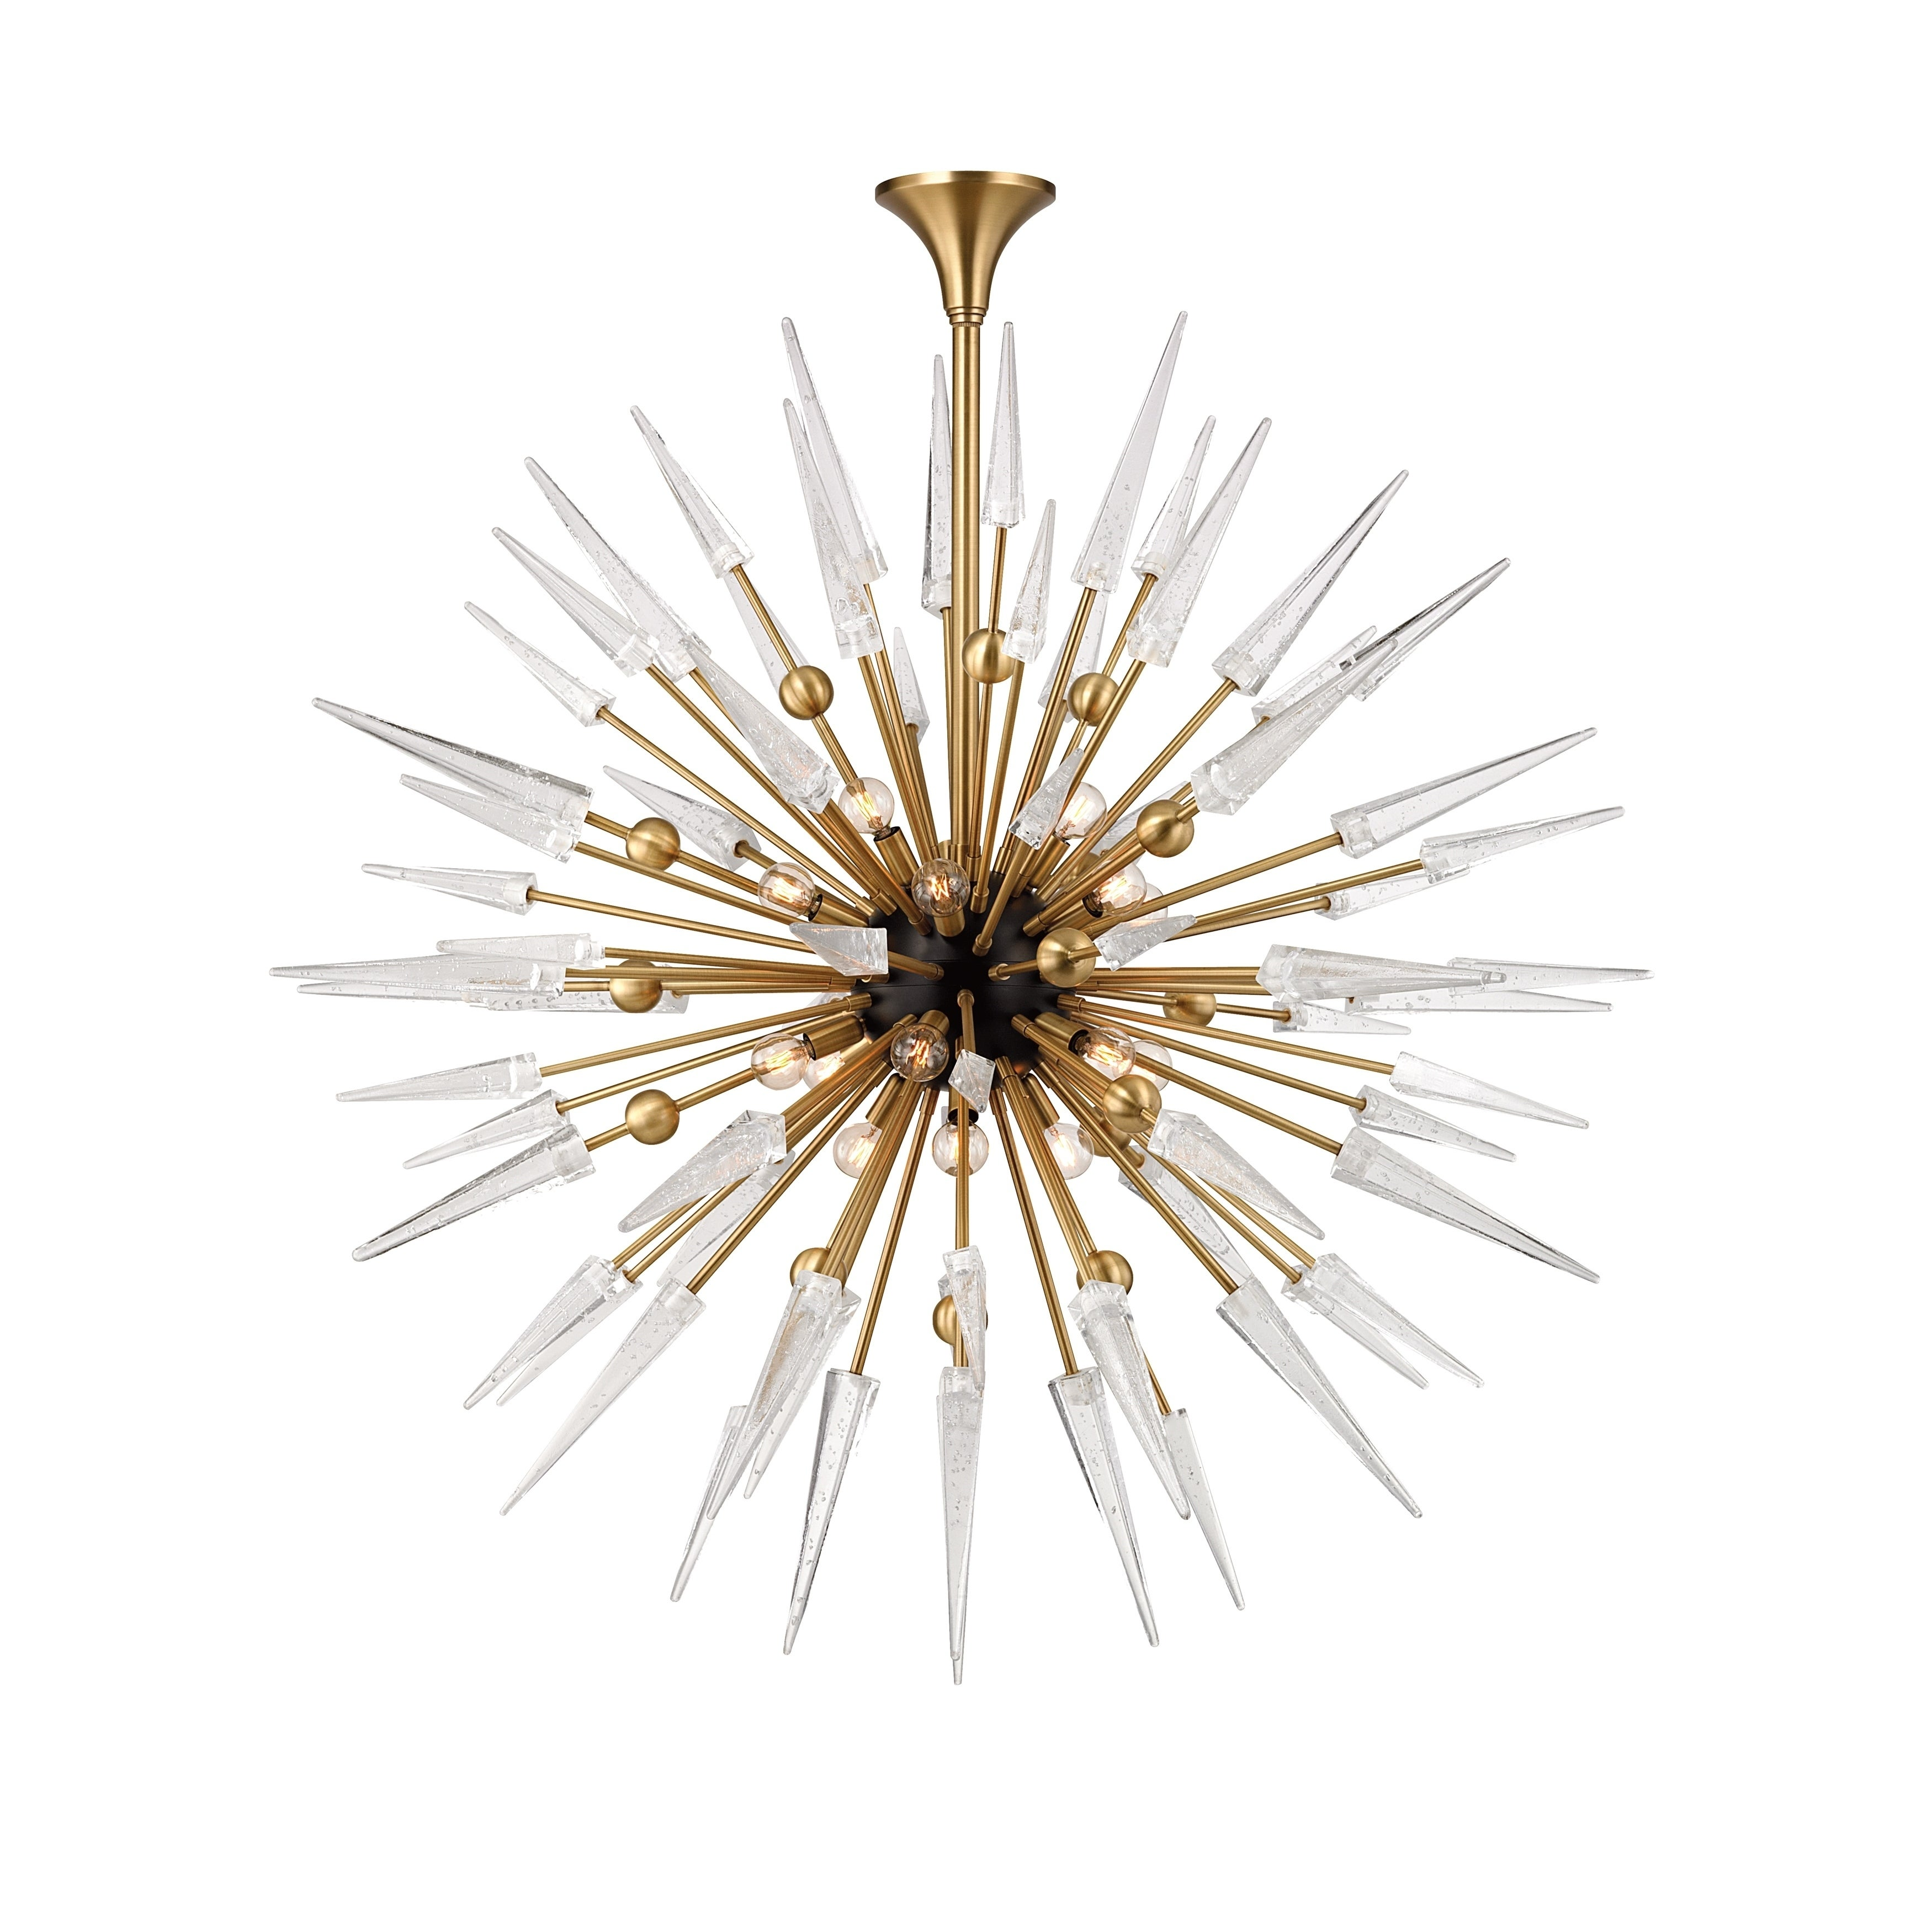 Hudson valley sparta aged brass metal chandelier free shipping hudson valley sparta aged brass metal chandelier free shipping today overstock 23492652 arubaitofo Images